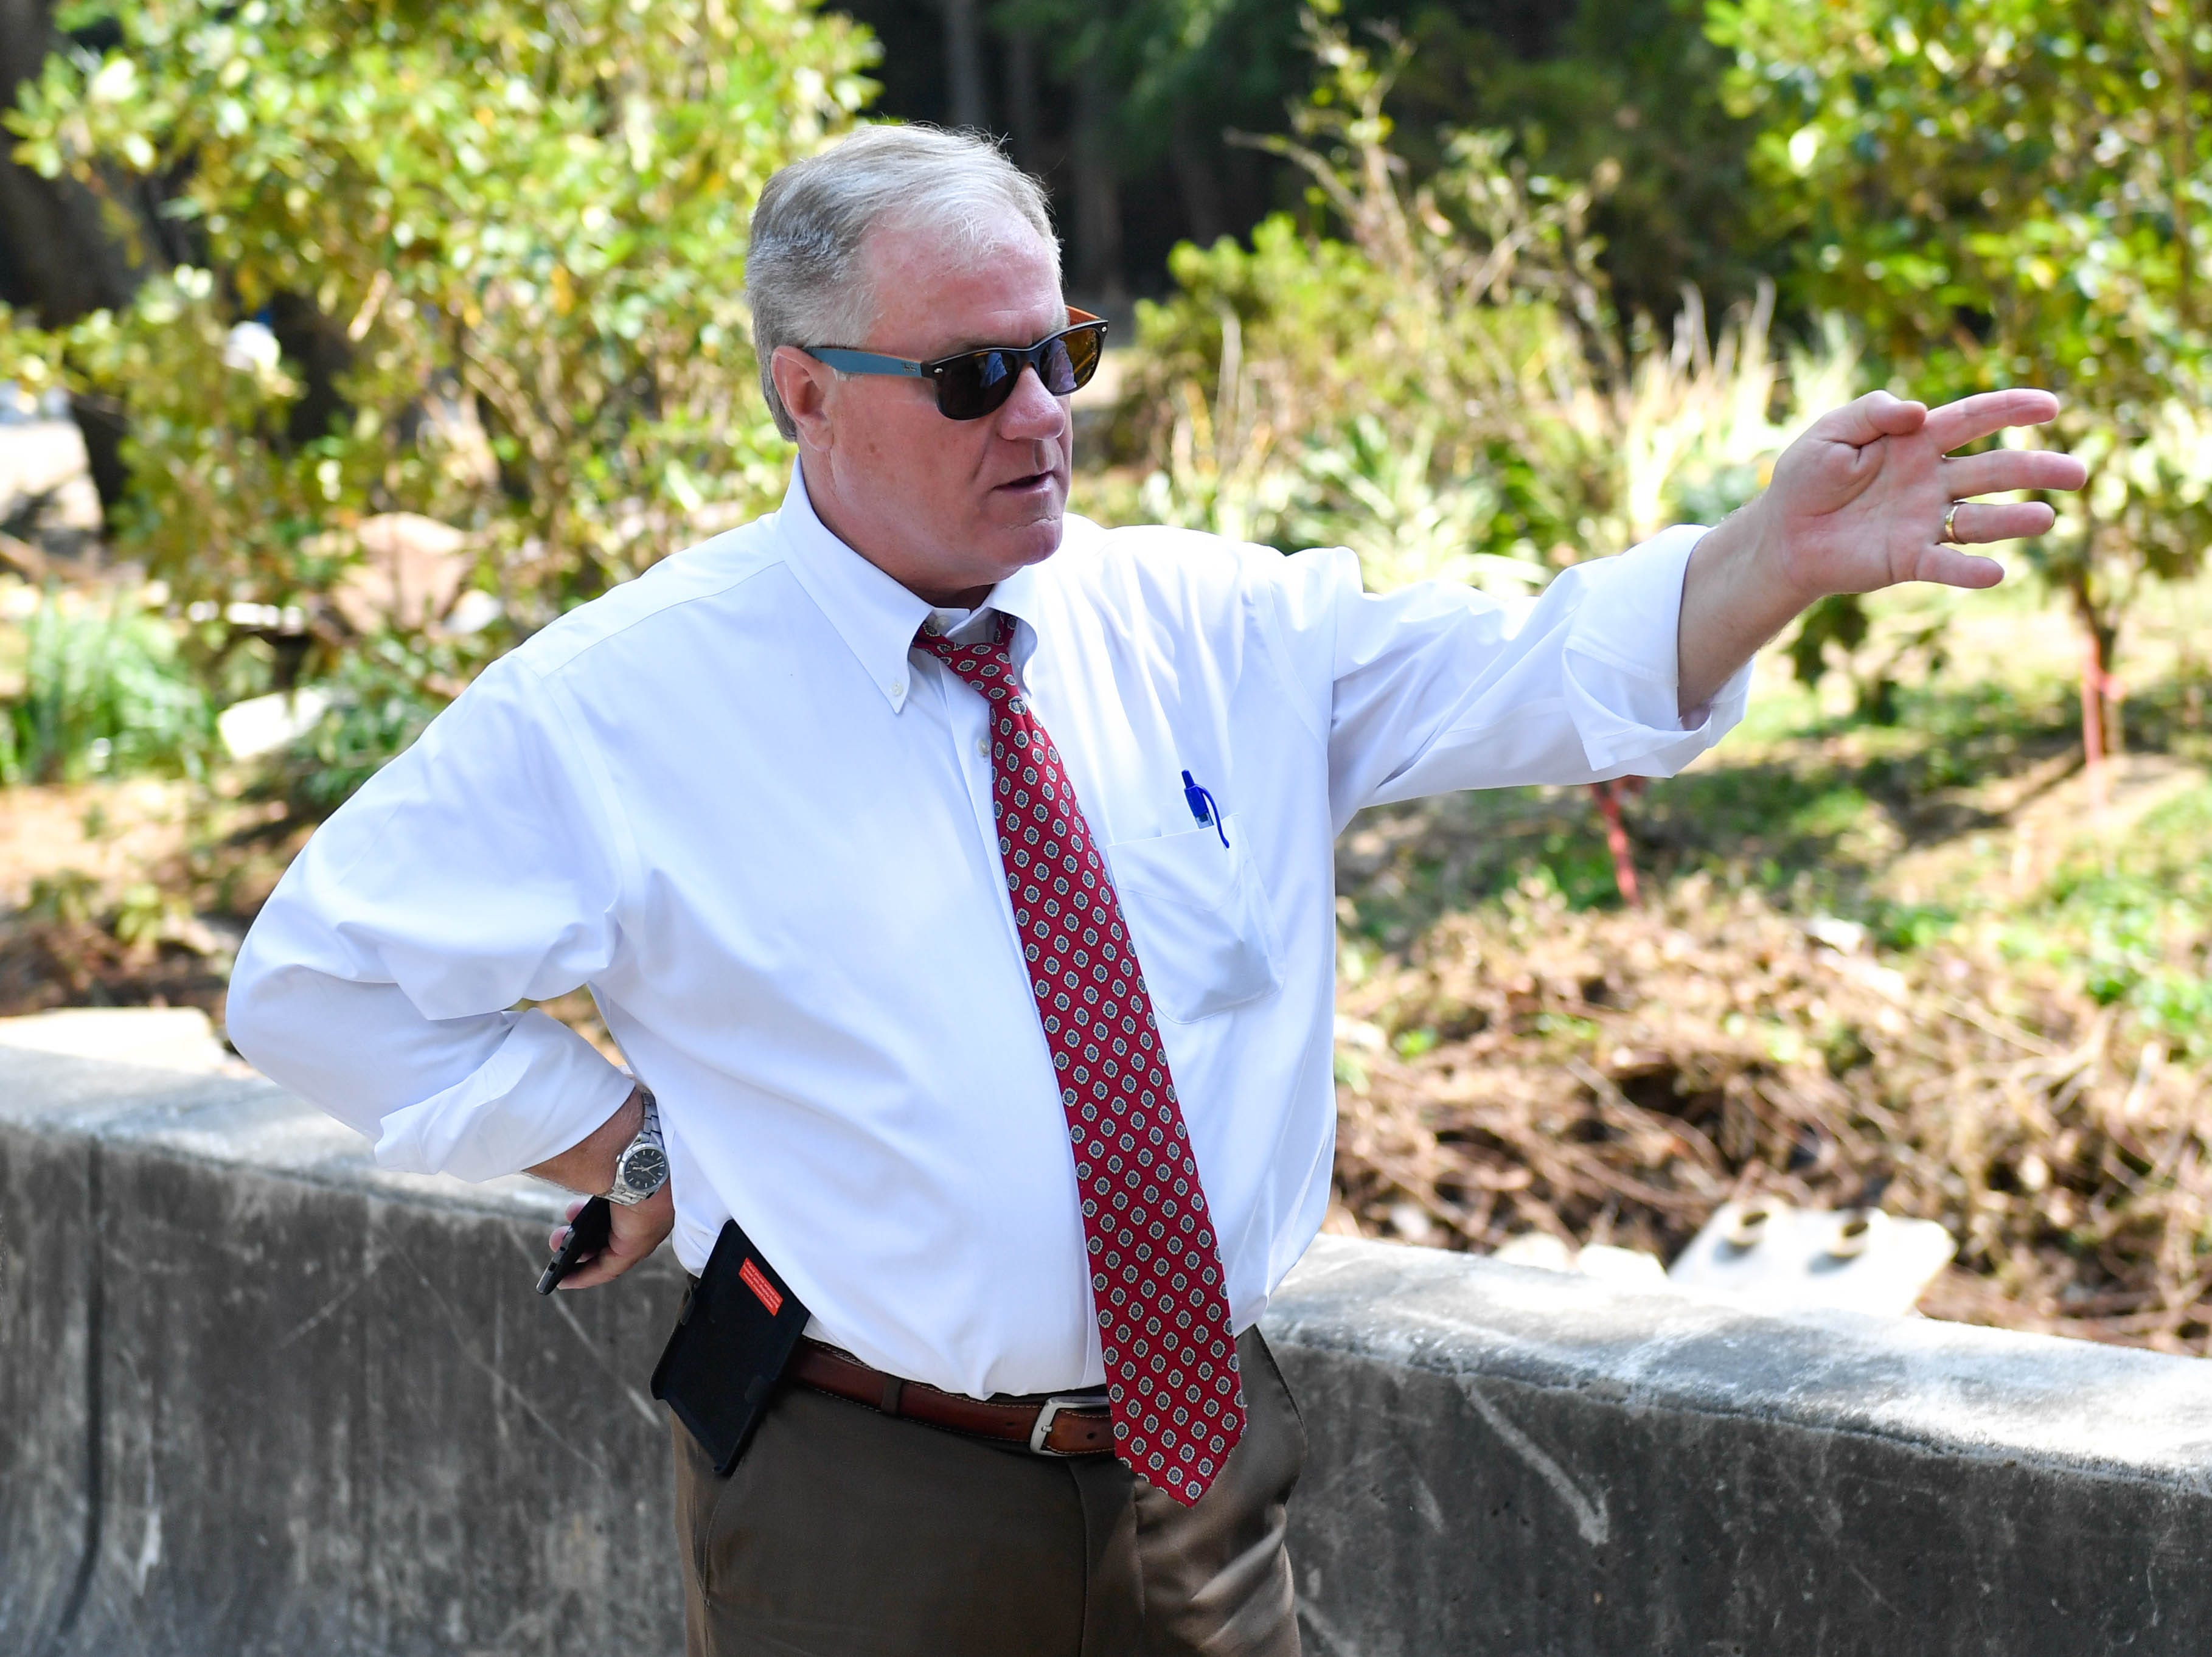 Former state Sen. Scott Wagner, Republican candidate for governor, came to York County on Sept. 6 to see the damage that was caused by the recent flash flooding.